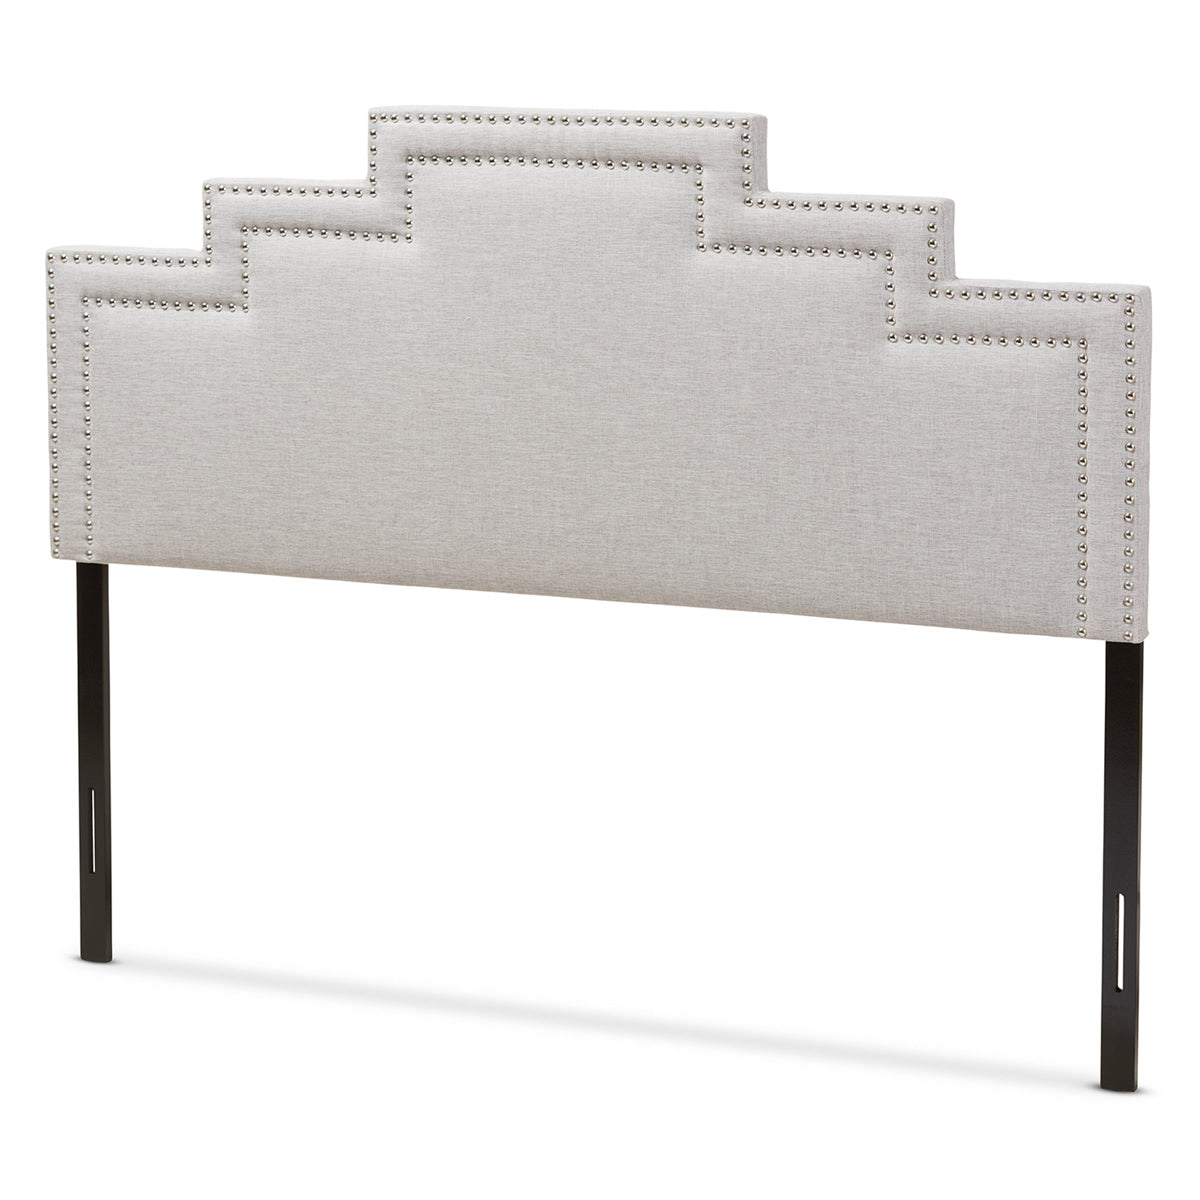 Baxton Studio Sophia Modern and Contemporary Greyish Beige Fabric King Size Headboard Baxton Studio-Headboards-Minimal And Modern - 1